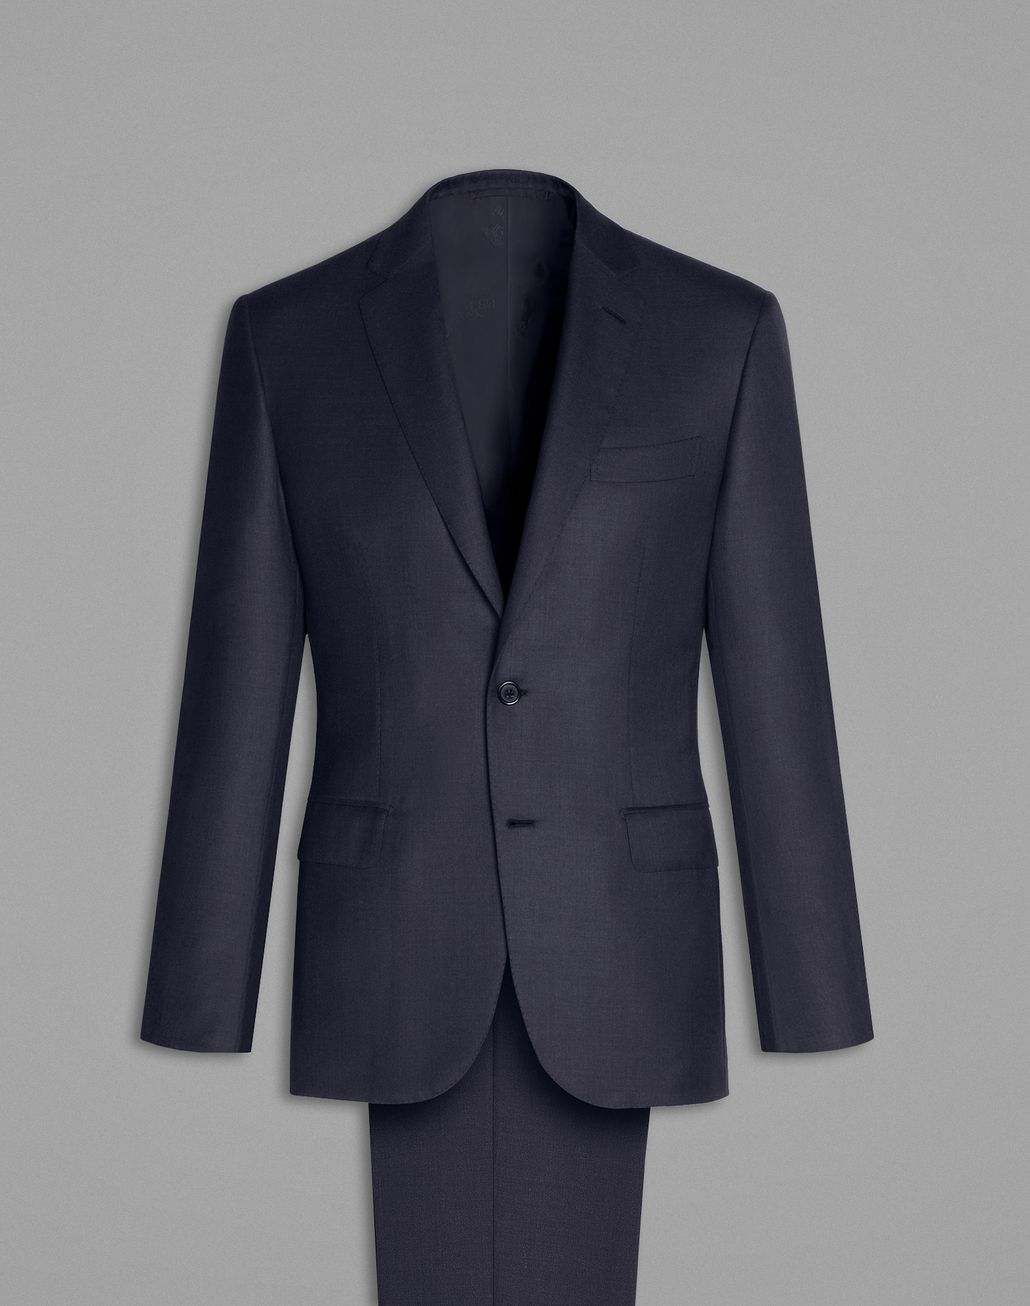 BRIONI 'Essential' Navy Blue Madison Suit Suits & Jackets Man f